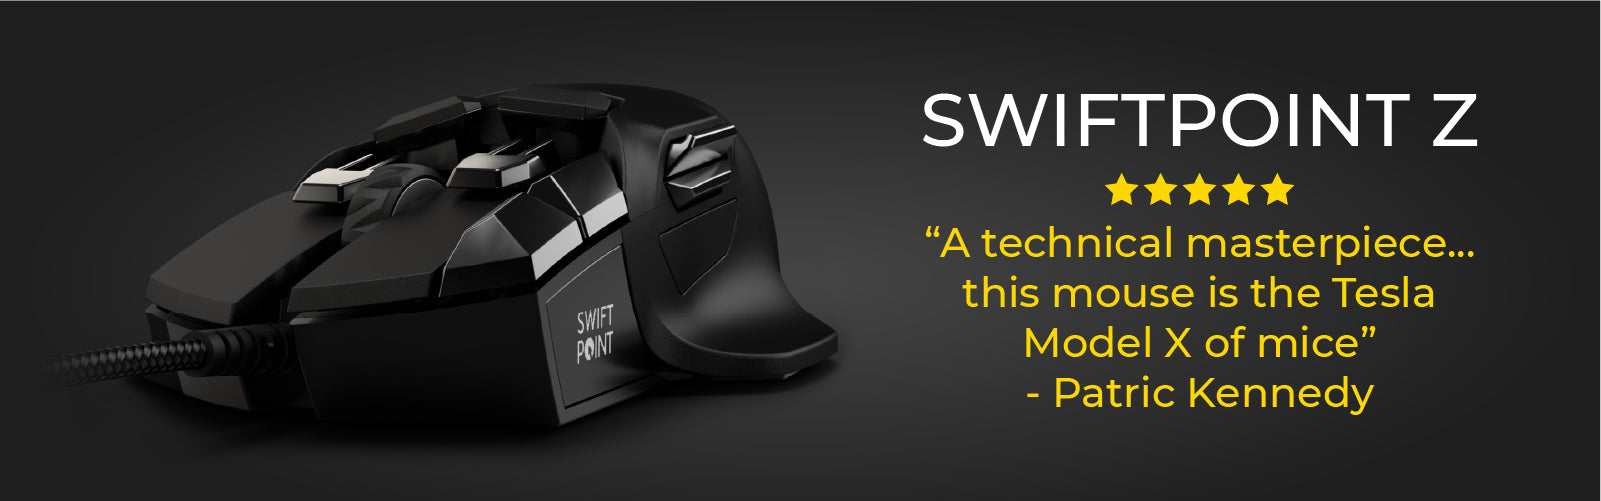 Swiftpoint z gaming mouse